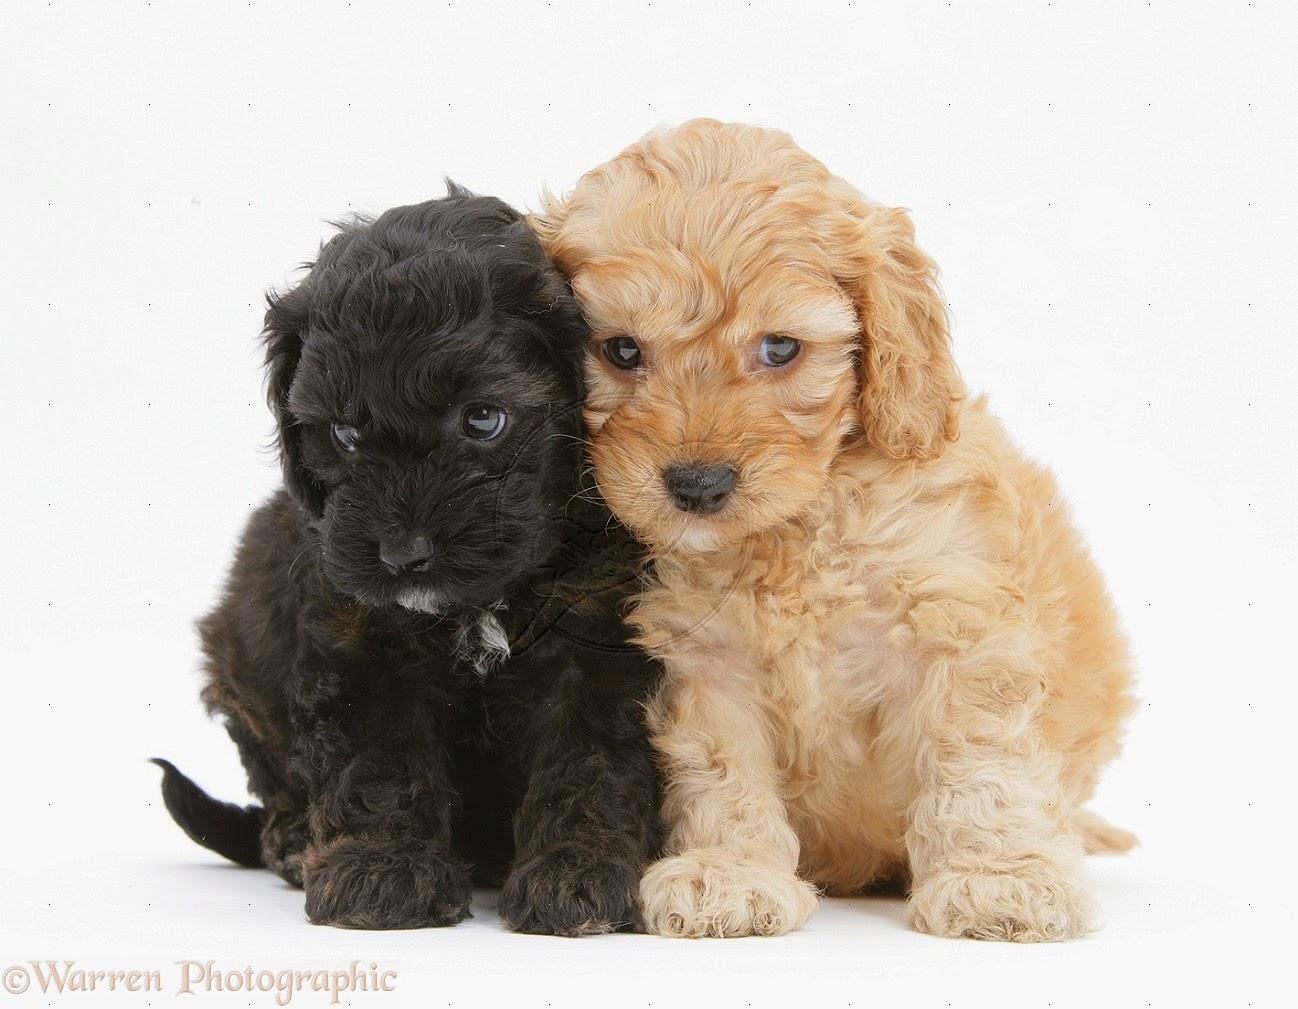 cockapoo images | Cockapoo Photo Gallery - The Cockapoo Club of GB ...